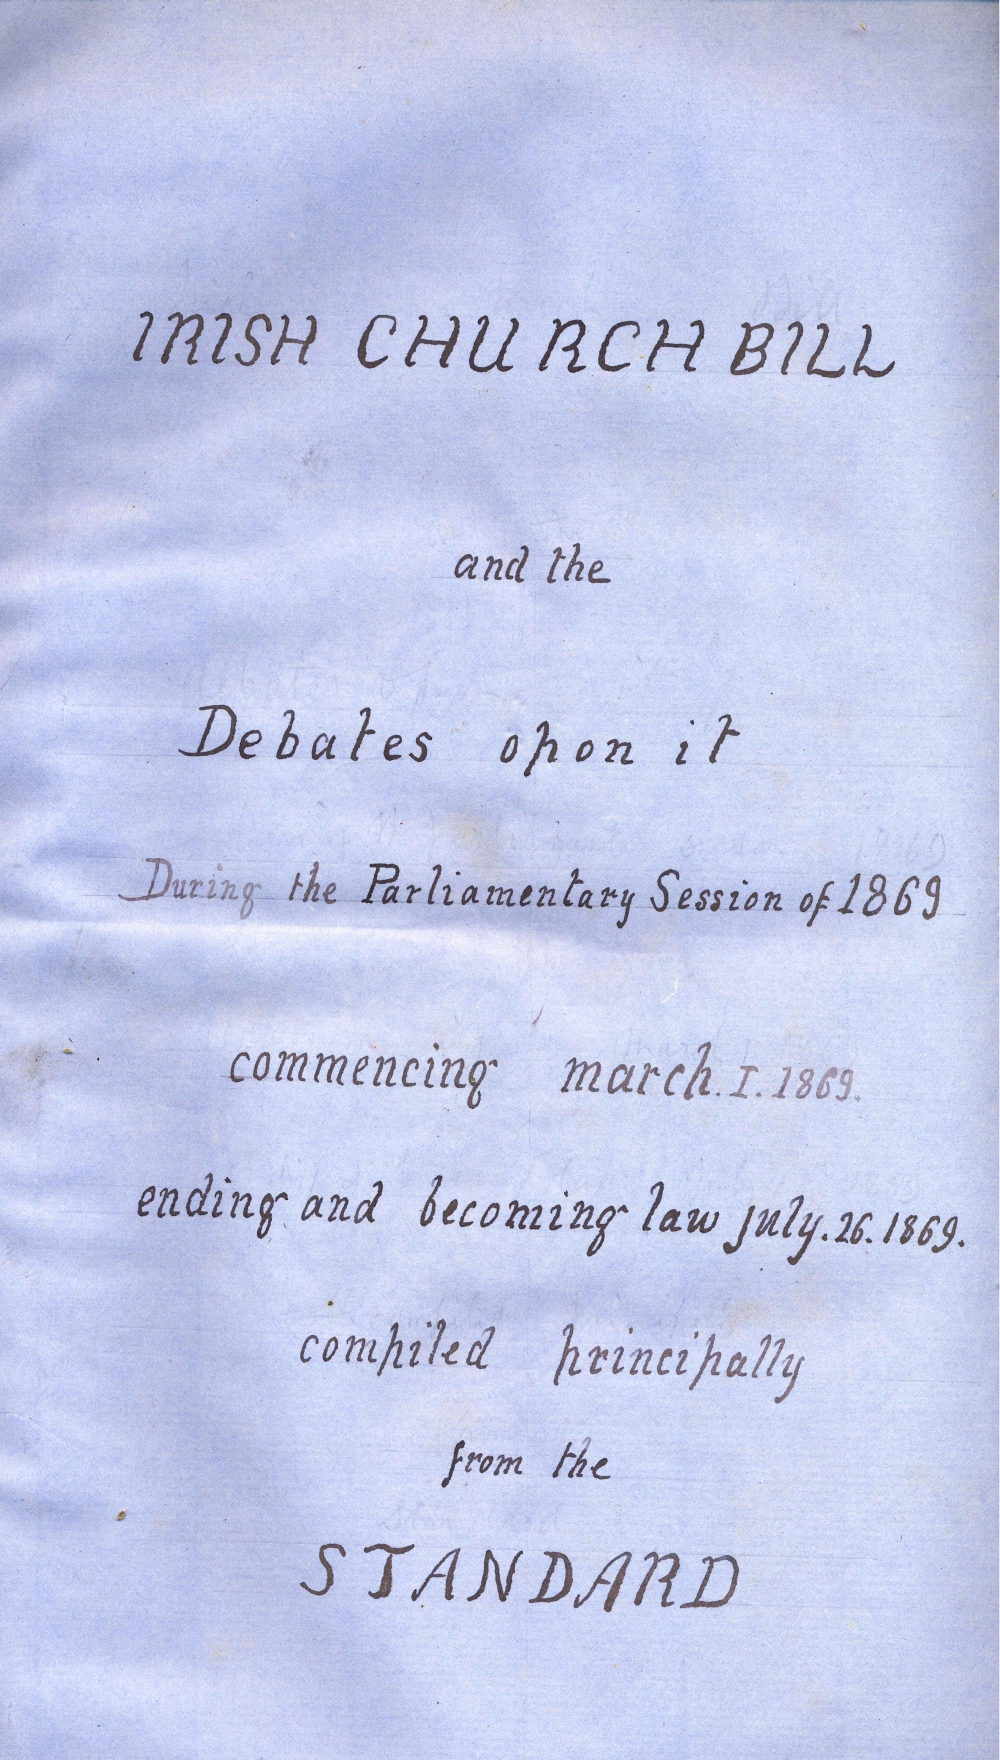 Title page of the first volume of cuttings complied by the Revd Robert Walsh, c. 1870 covering the Irish Church Bill debates of 1869, and its subsequent enactment disestablishing the Church of Ireland, RCB Library MS 297/1.